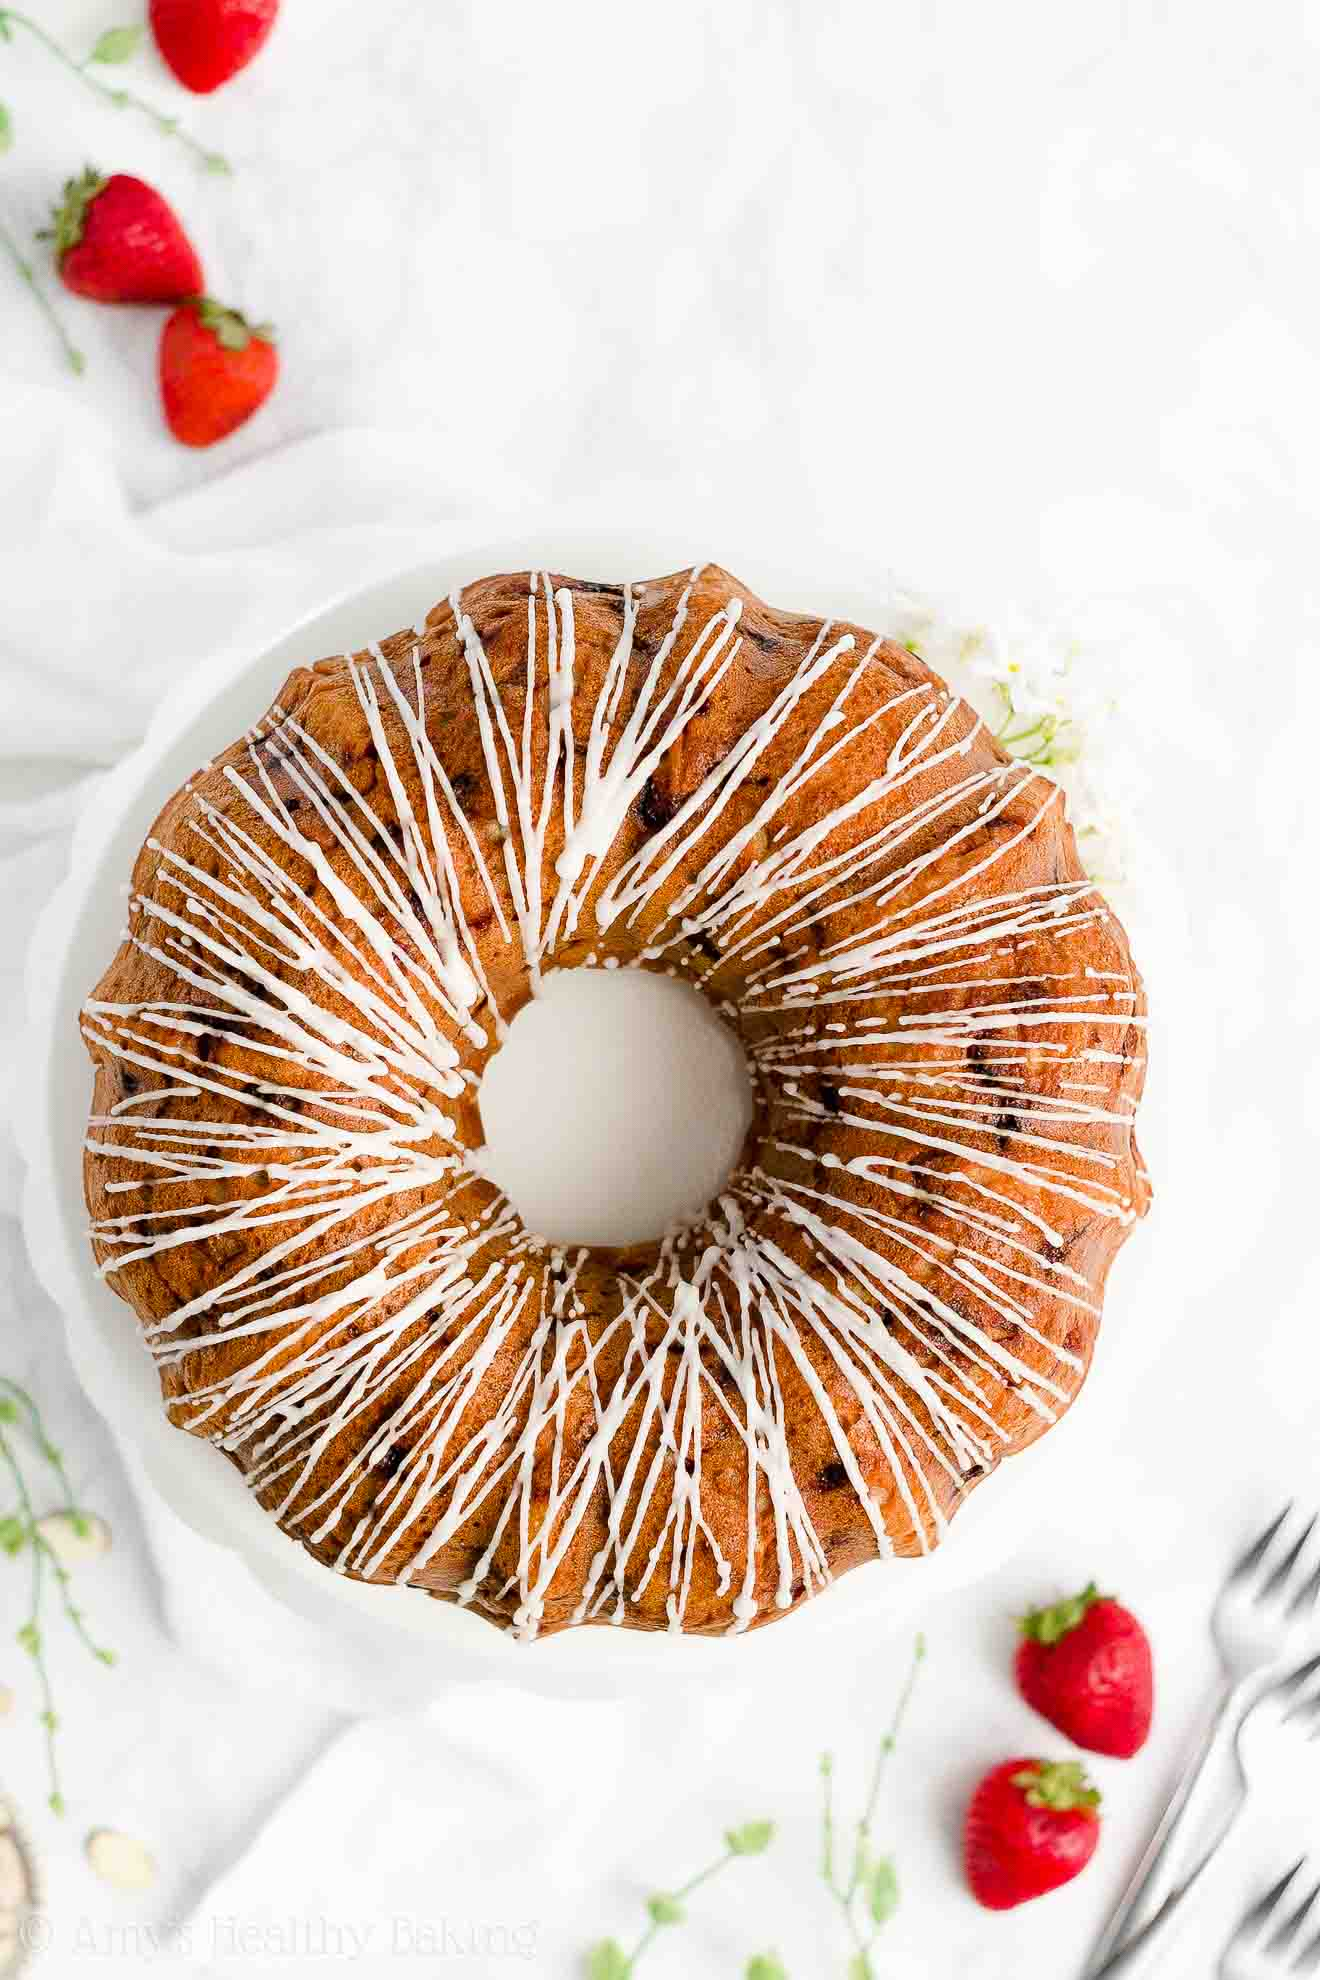 Easy Healthy Clean Eating Whole Wheat Greek Yogurt Strawberry Bundt Cake